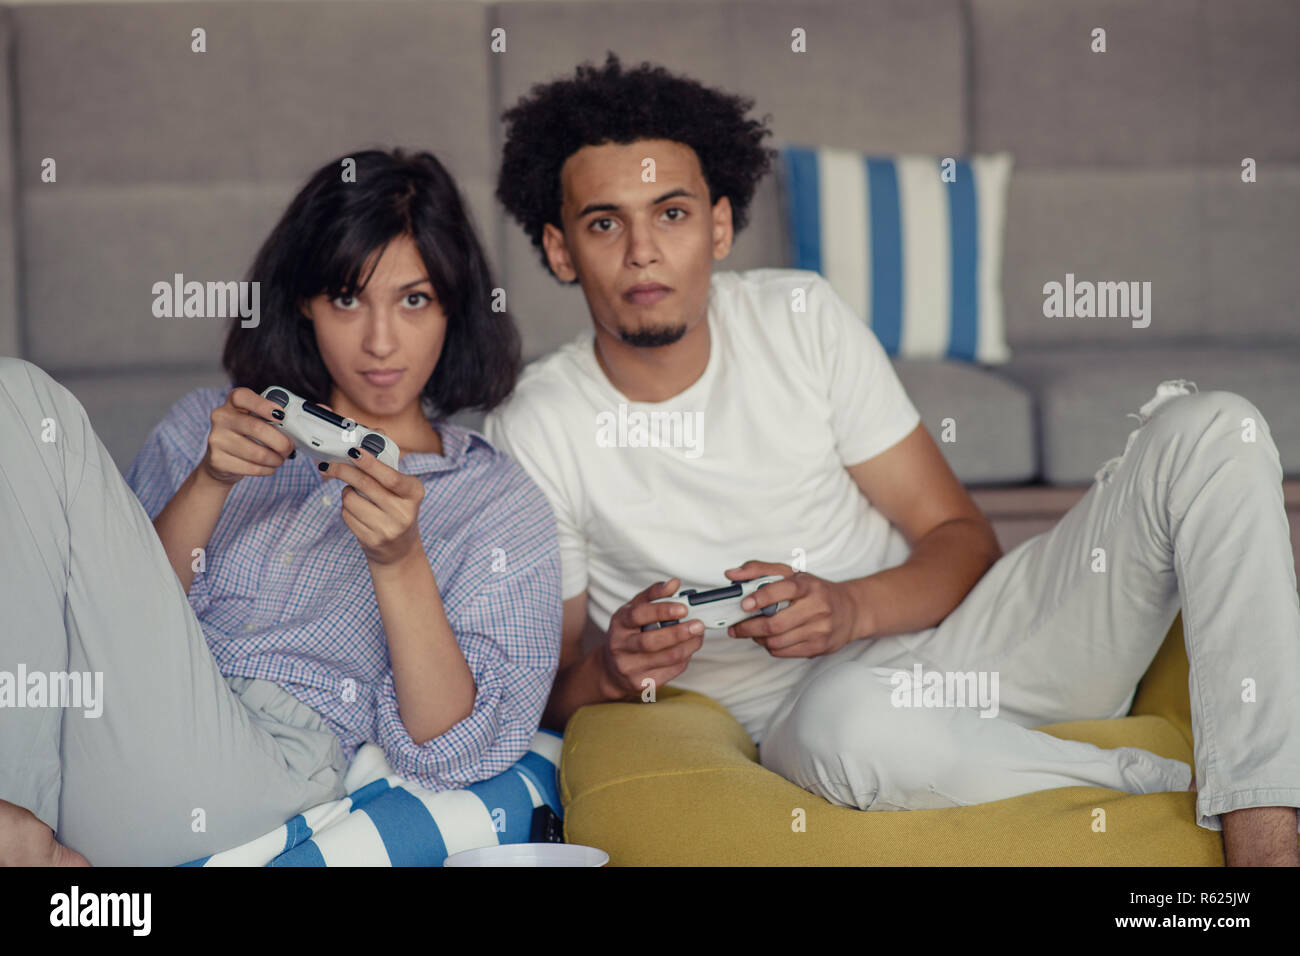 7f3cf0871e0c Playful young couple playing video games in their living room. - Stock Image